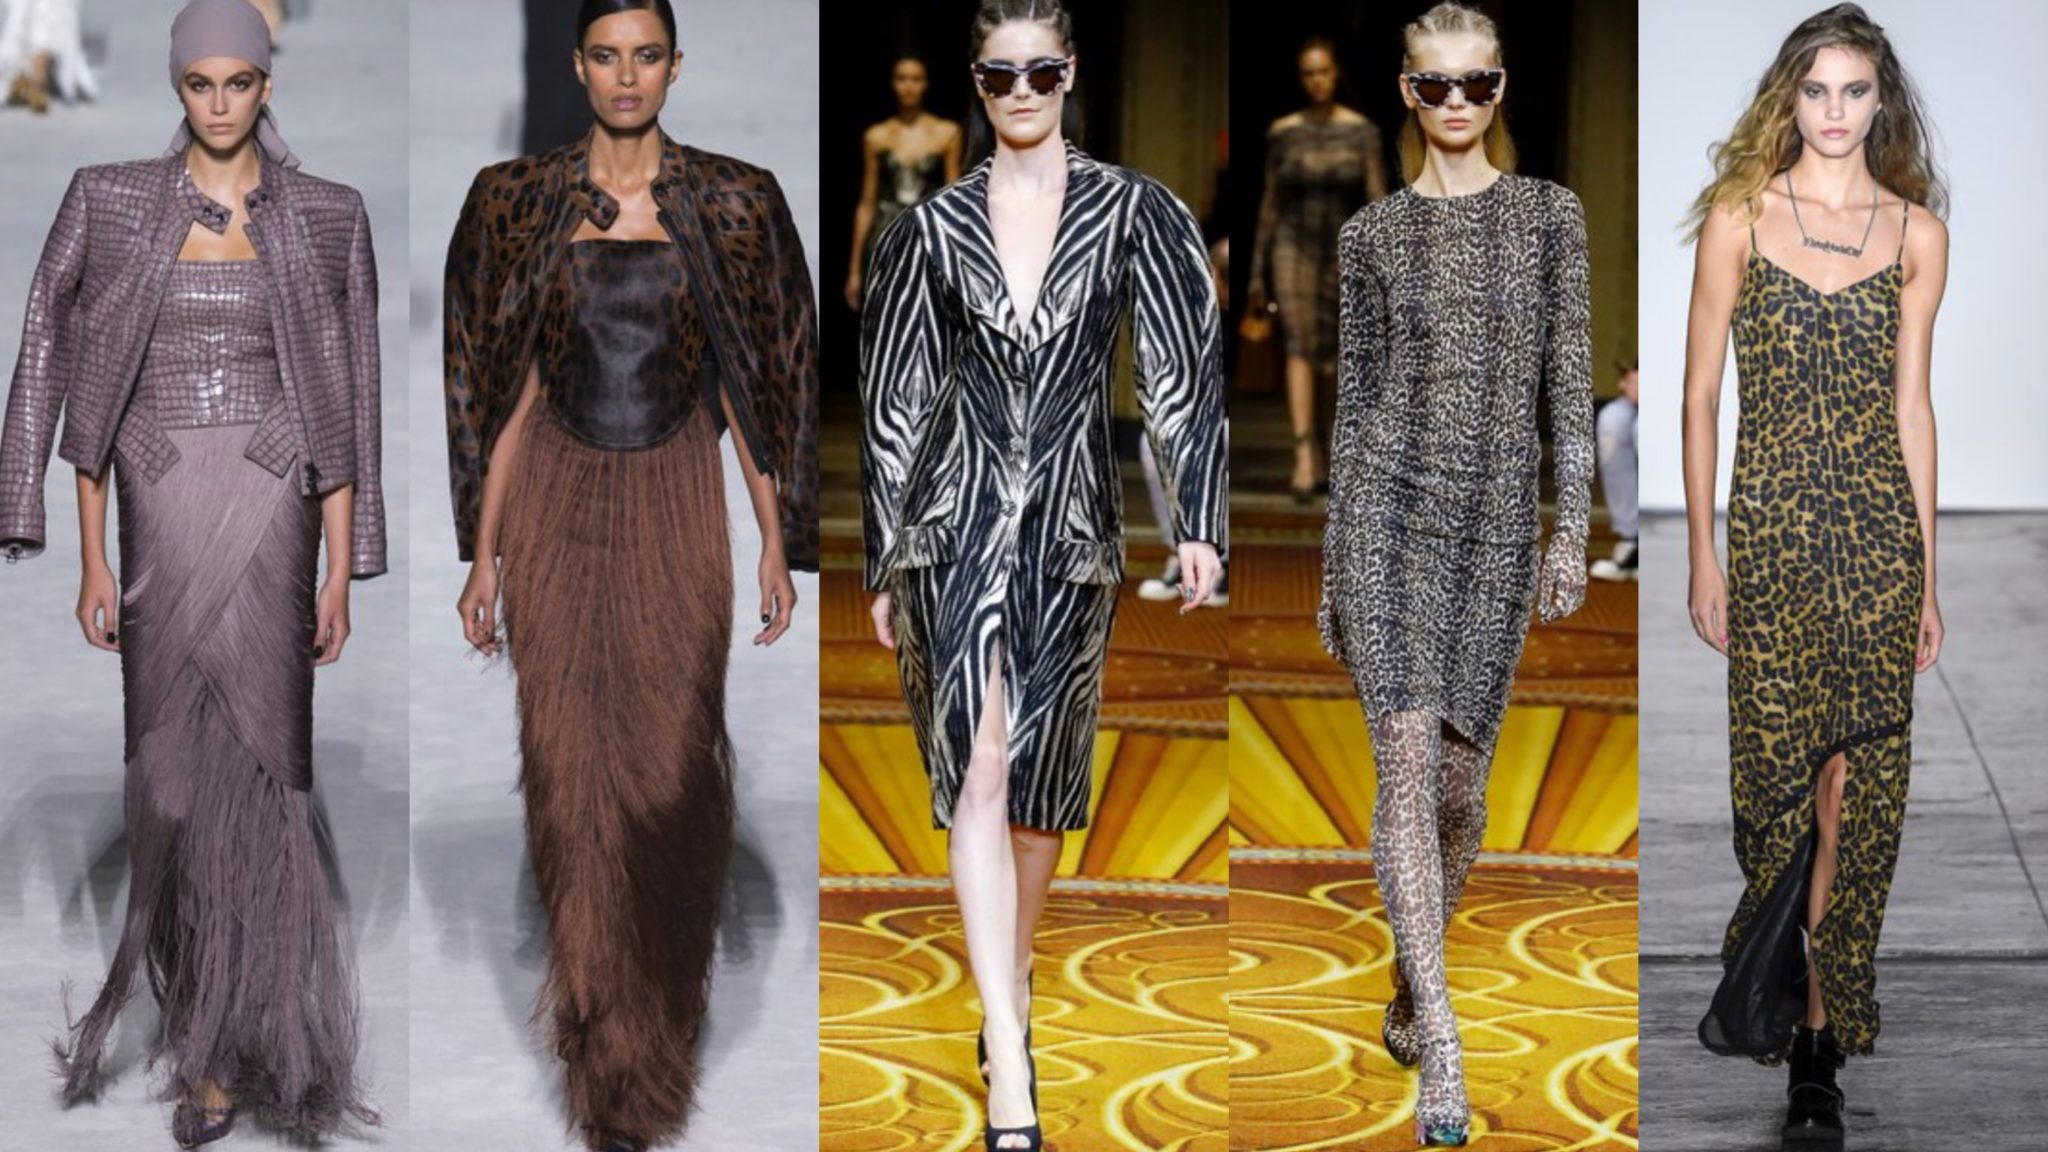 leopard print snake print zebra print - animal print september 2018 NYFW Tom Ford runway Nicole Miller runway Christian Siriano runway style spring 2019 - september 2018 - Vogue